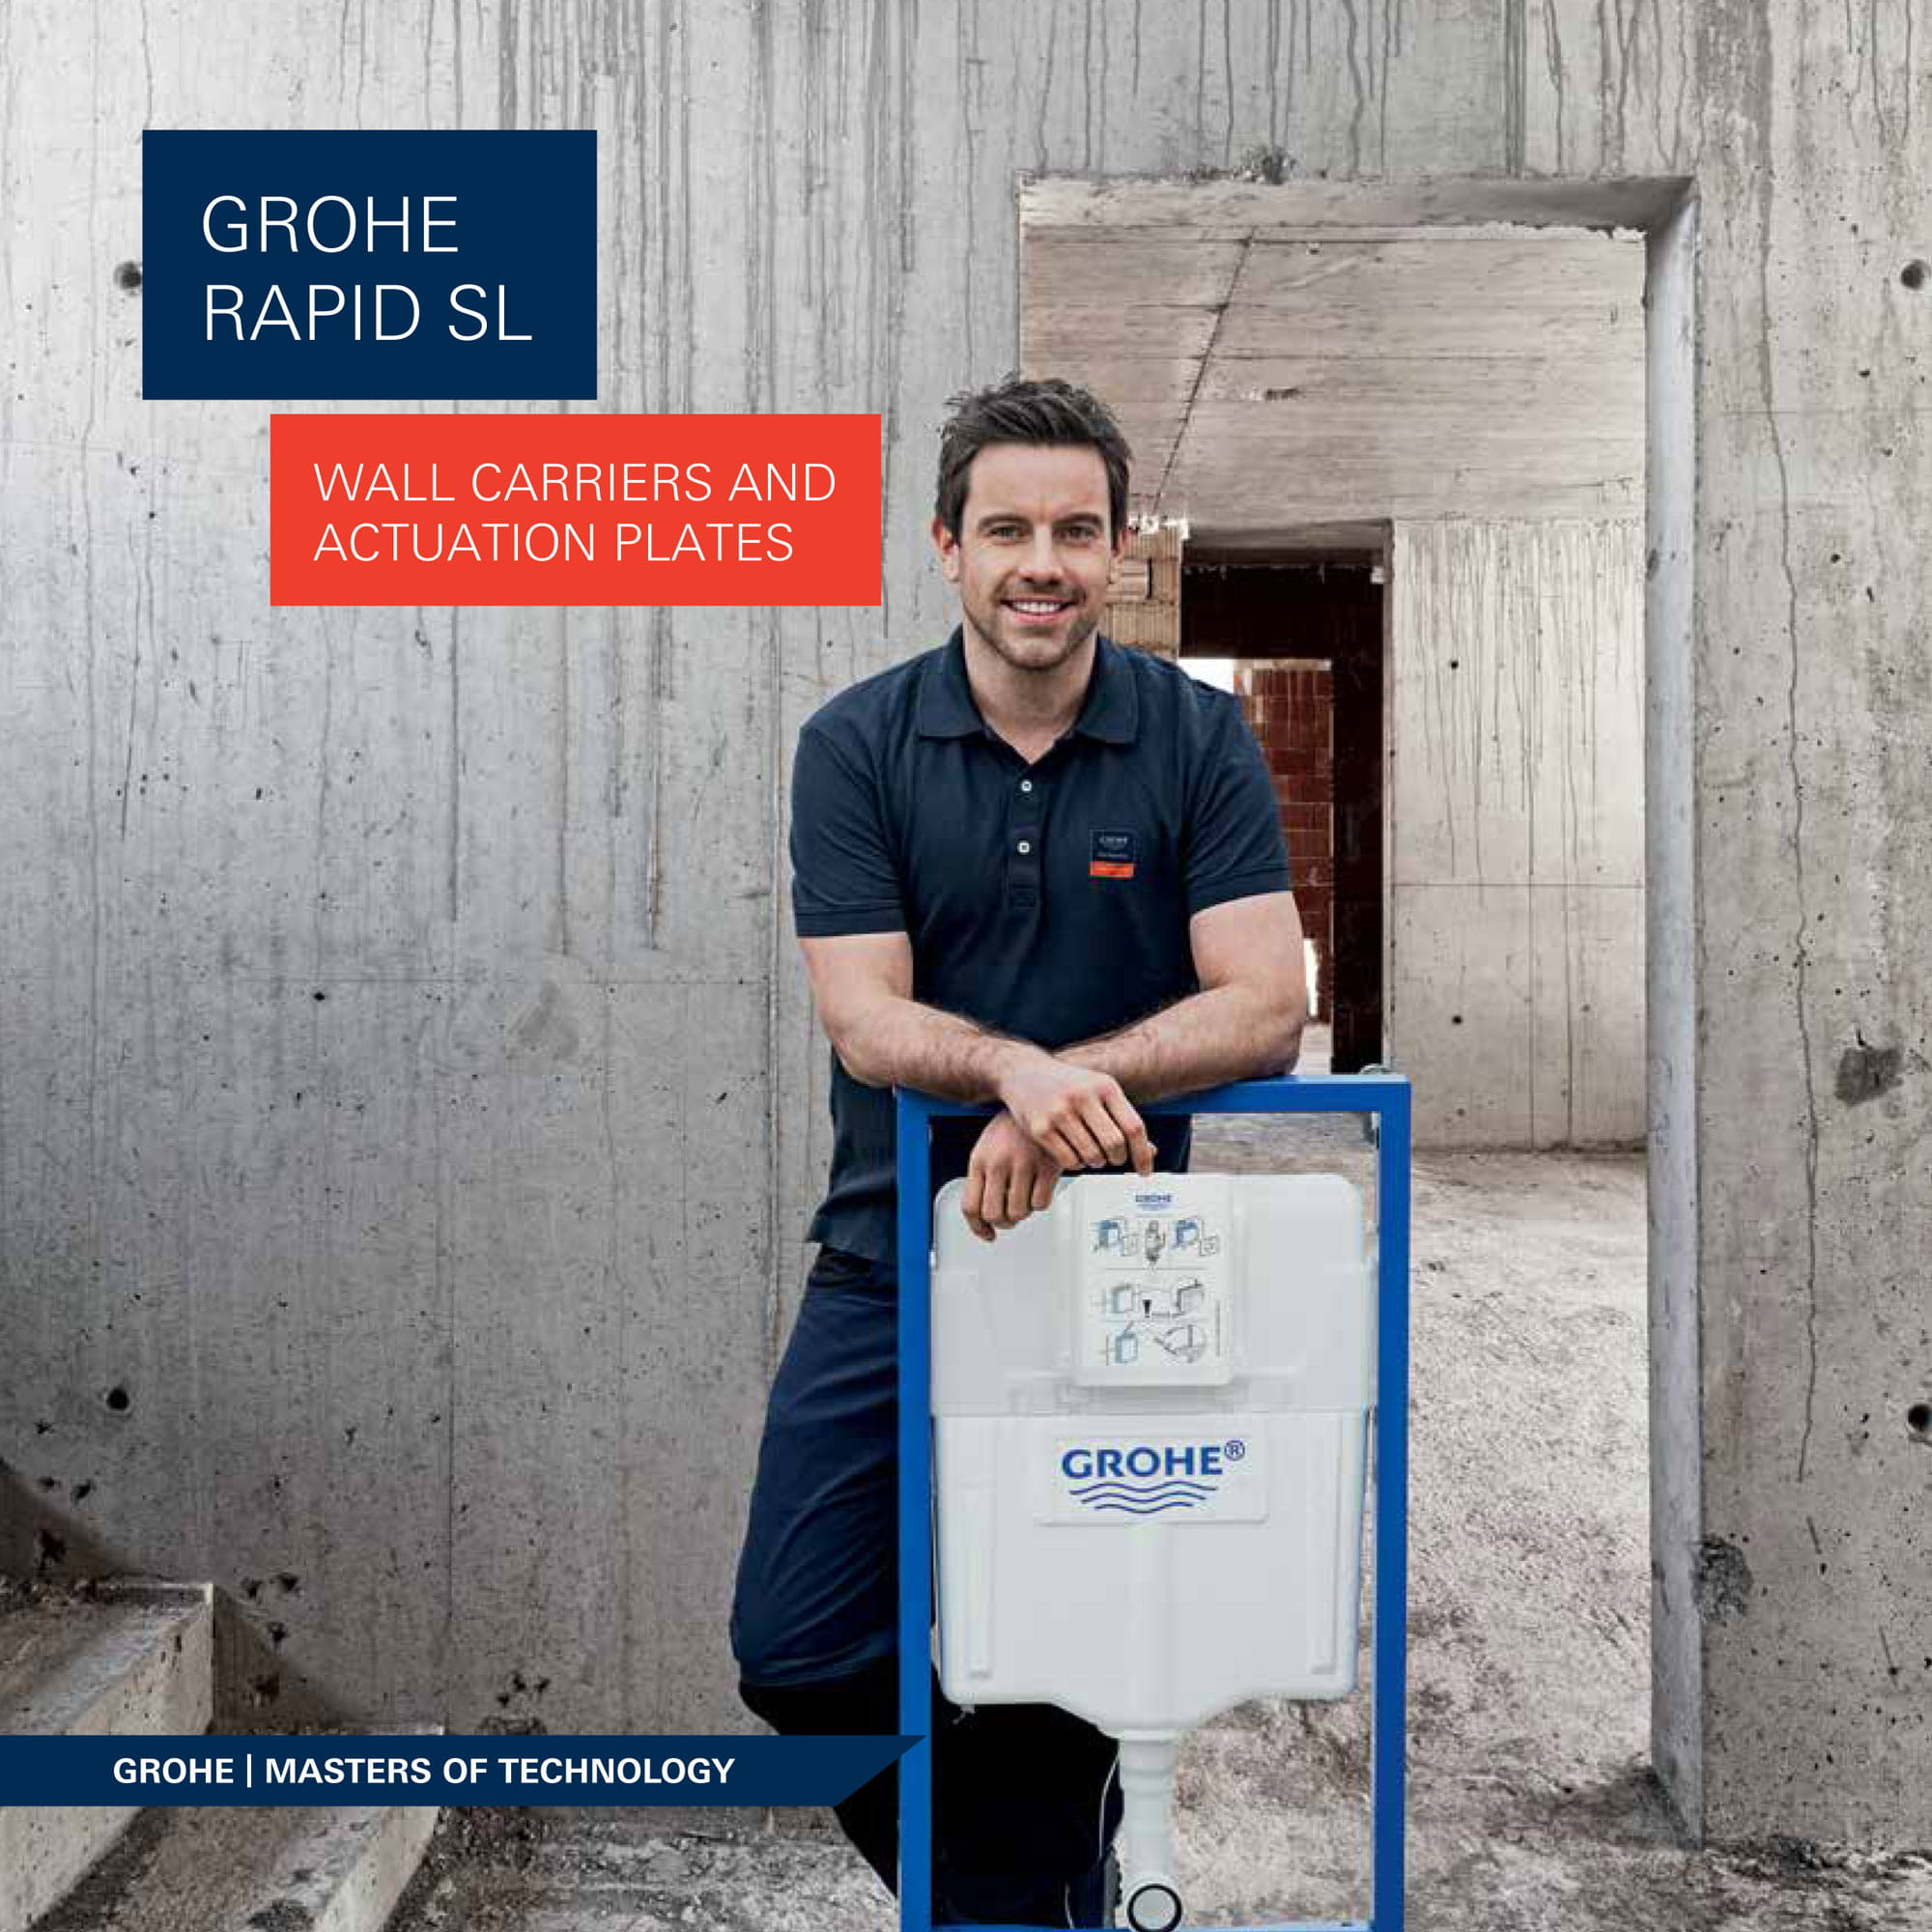 GROHE worker holding wall carrier